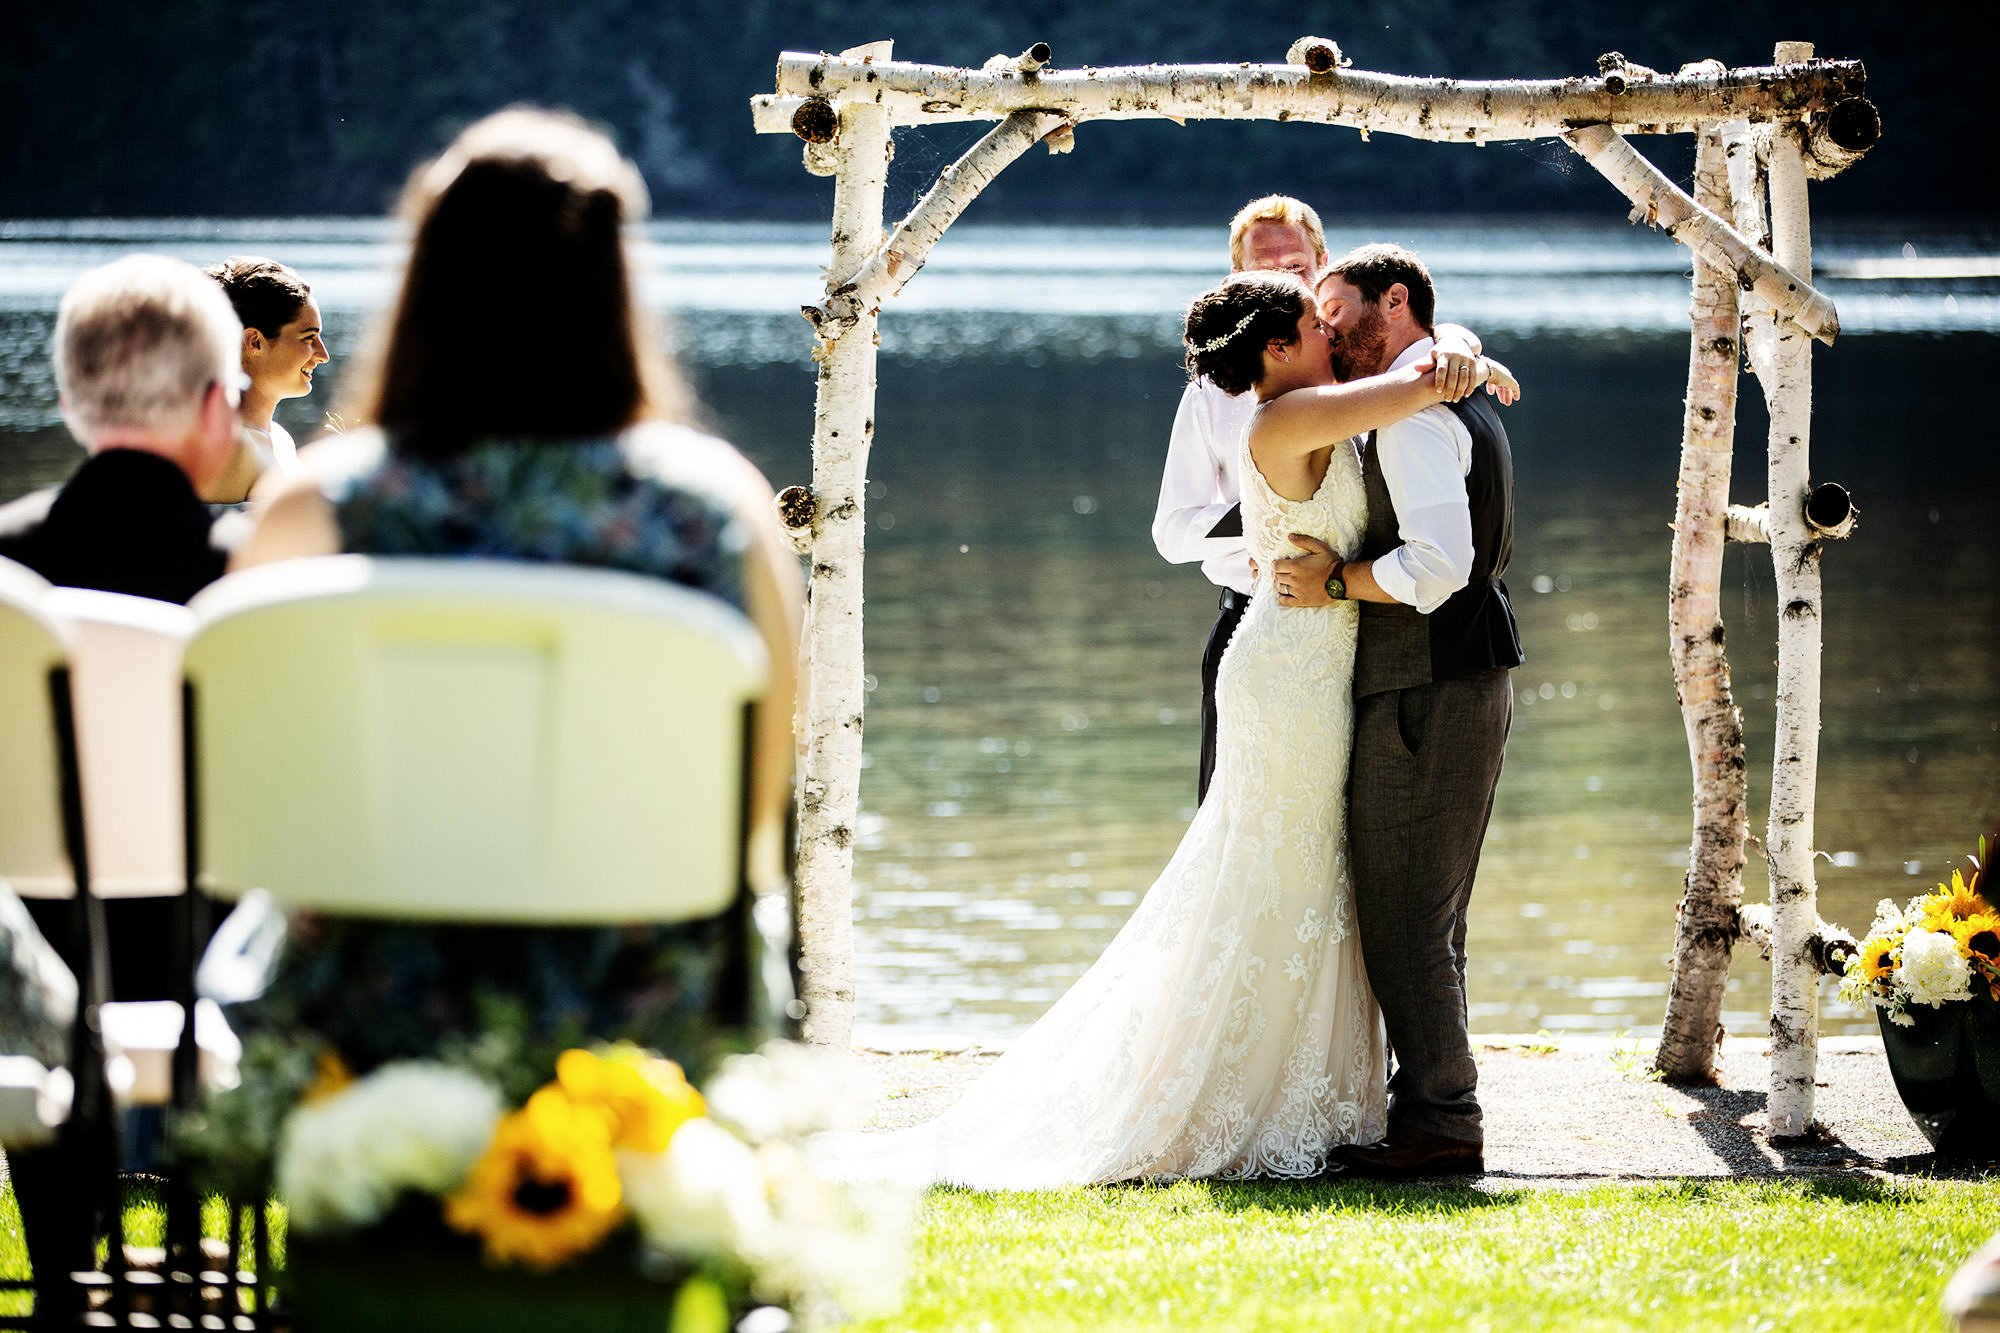 Maine Lakeside Cabin wedding  I  The couple share their first kiss.